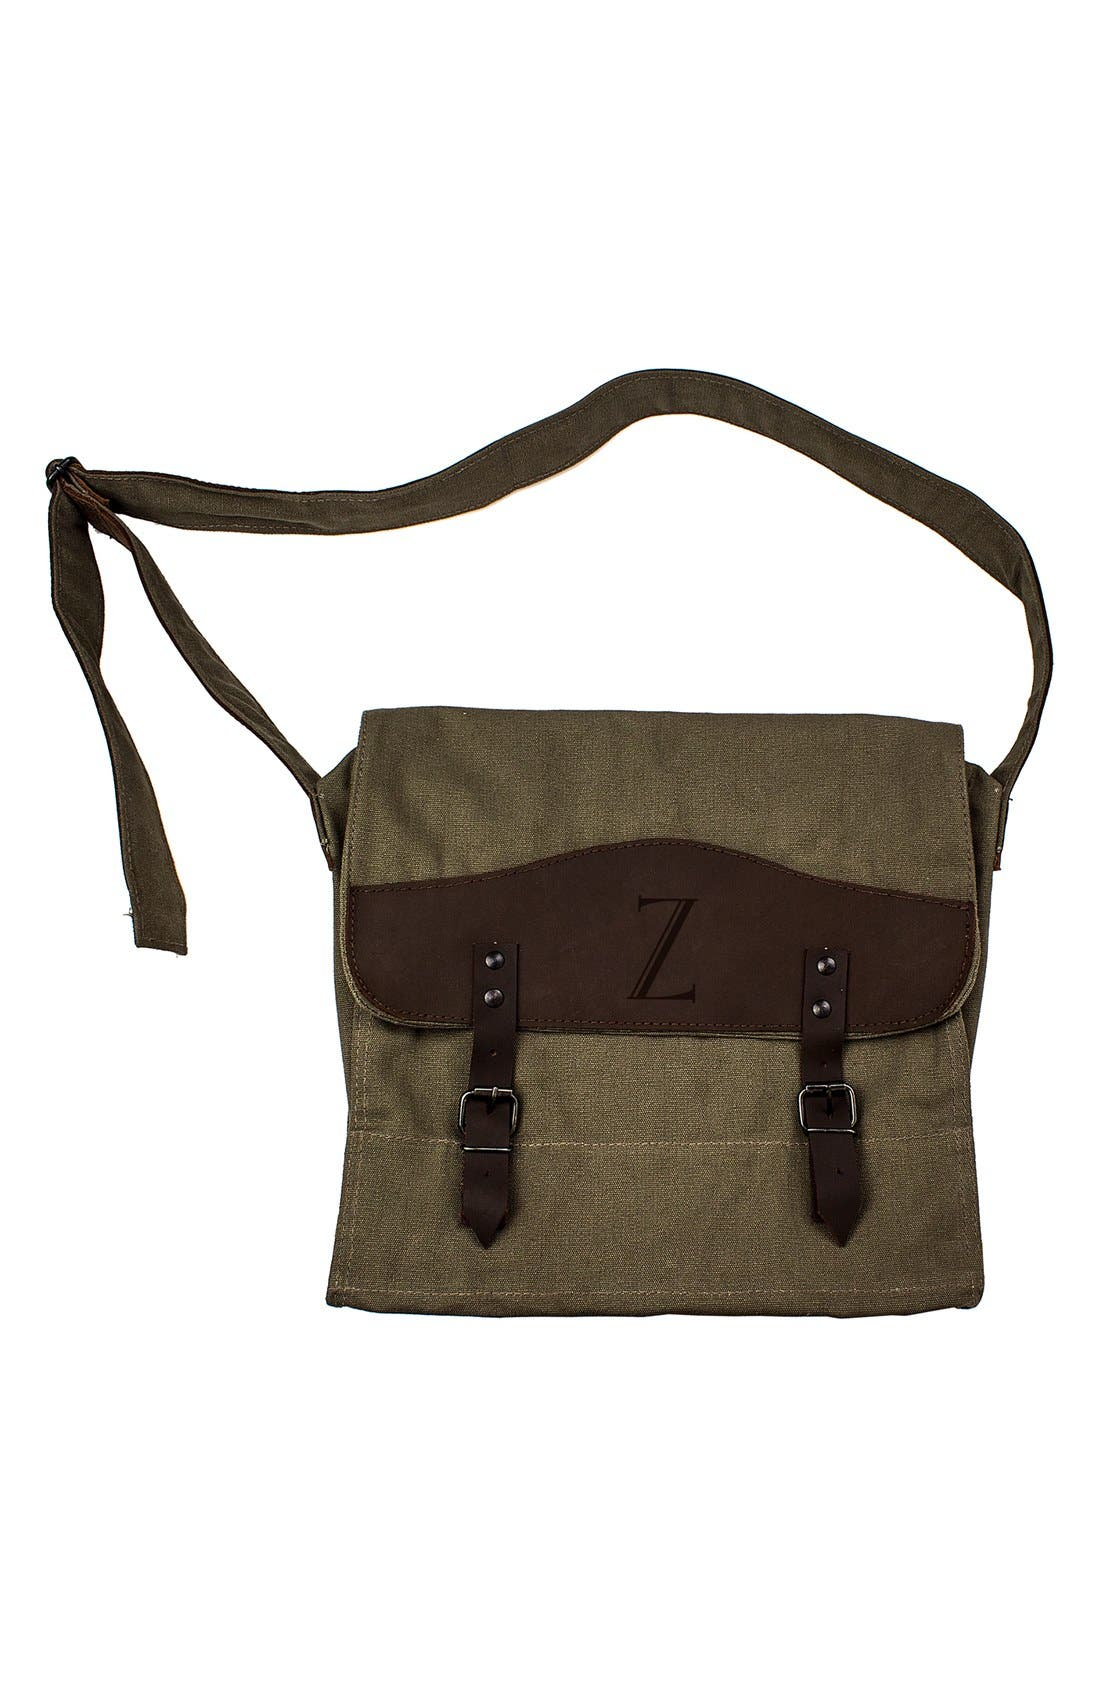 Cathy's Concepts Monogram Messenger Bag